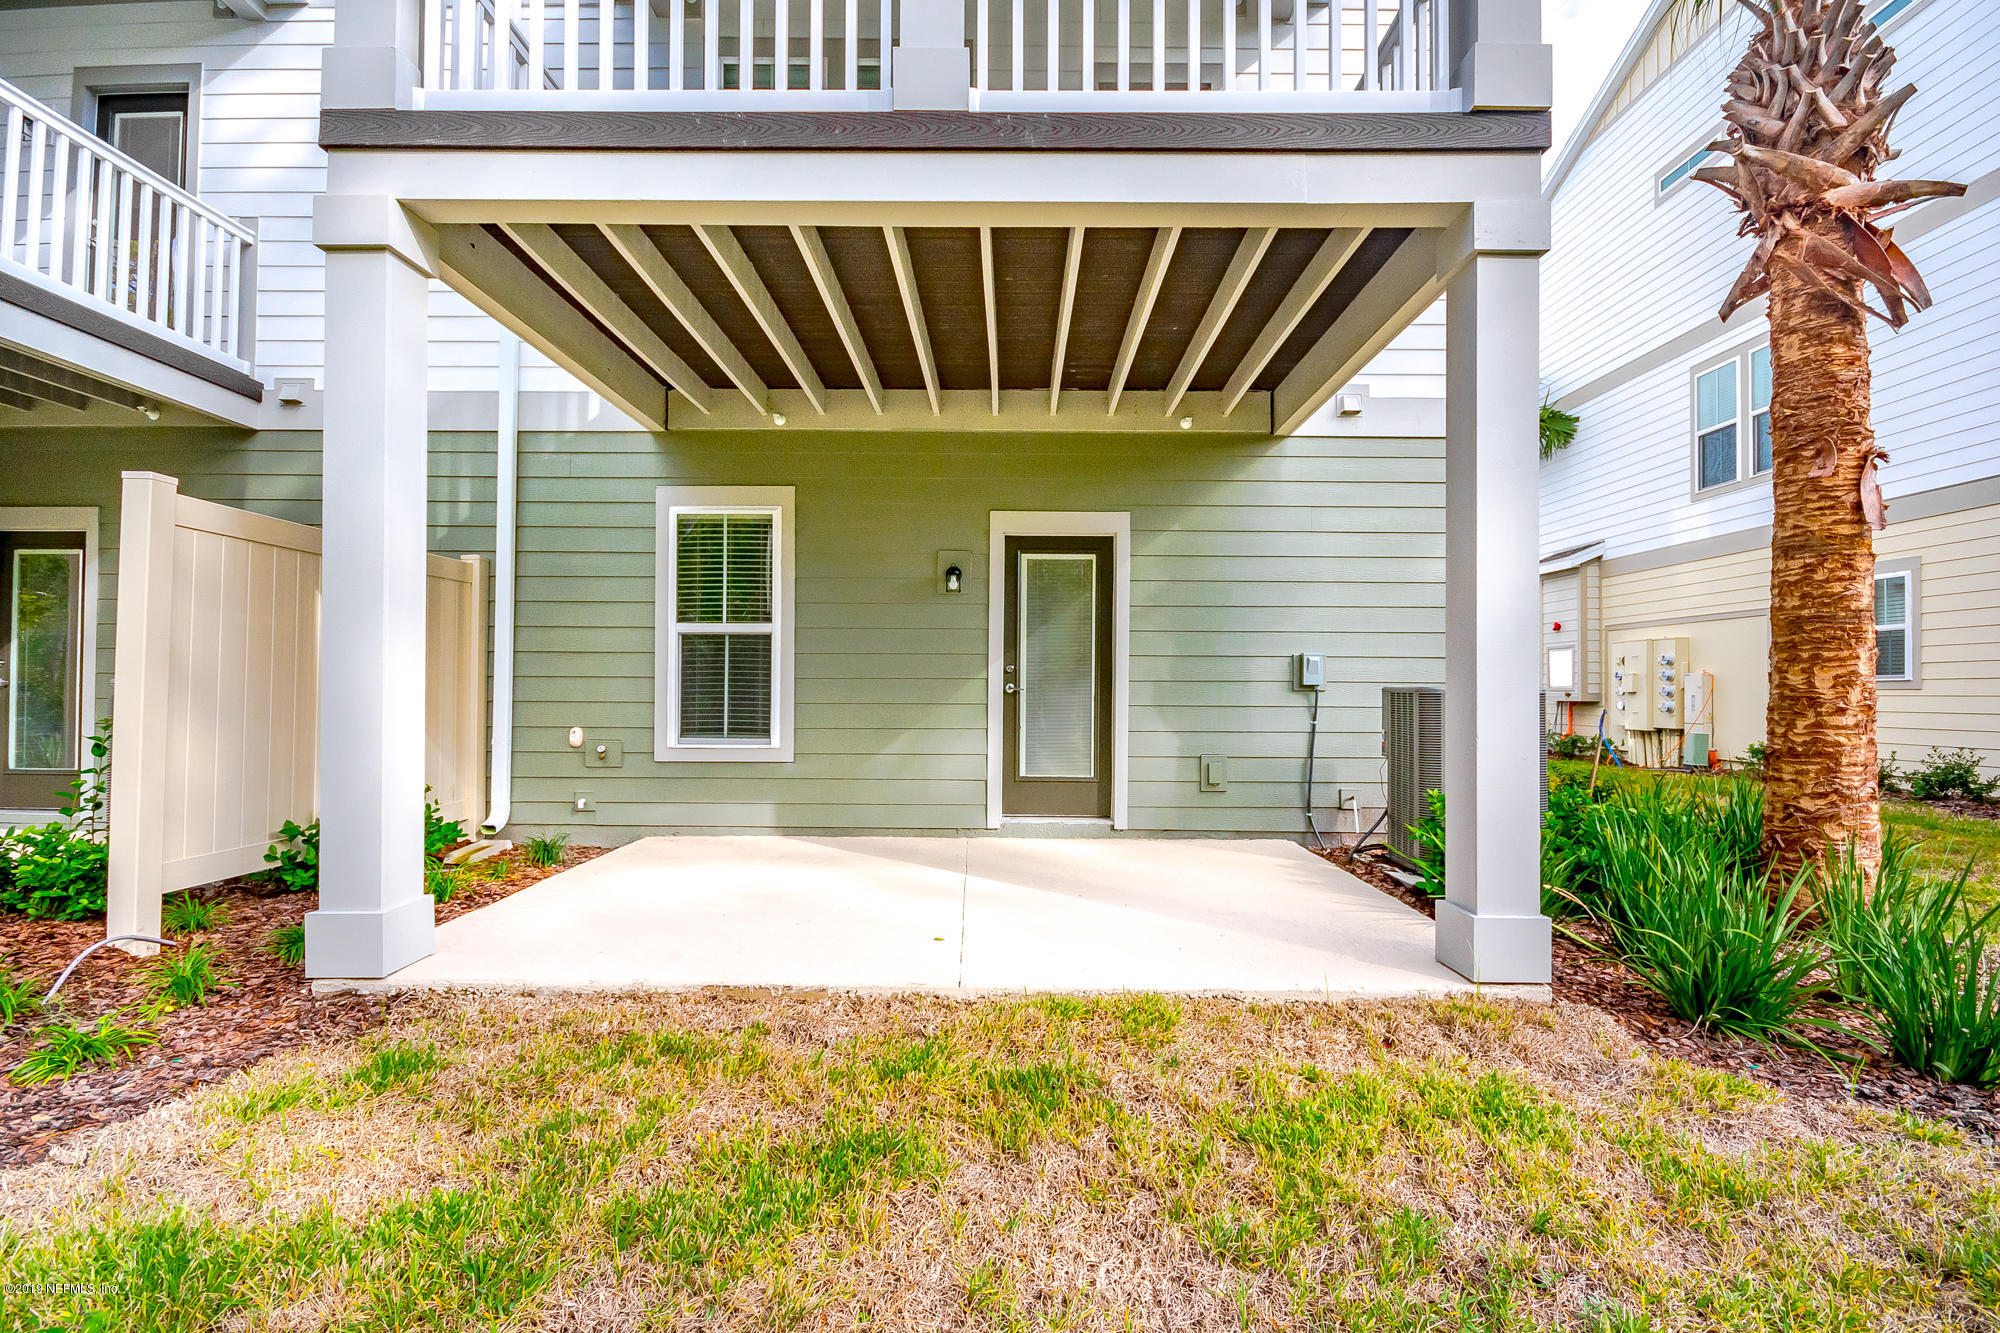 73 SPRING TIDE, PONTE VEDRA, FLORIDA 32081, 4 Bedrooms Bedrooms, ,3 BathroomsBathrooms,Condo,For sale,SPRING TIDE,1011173